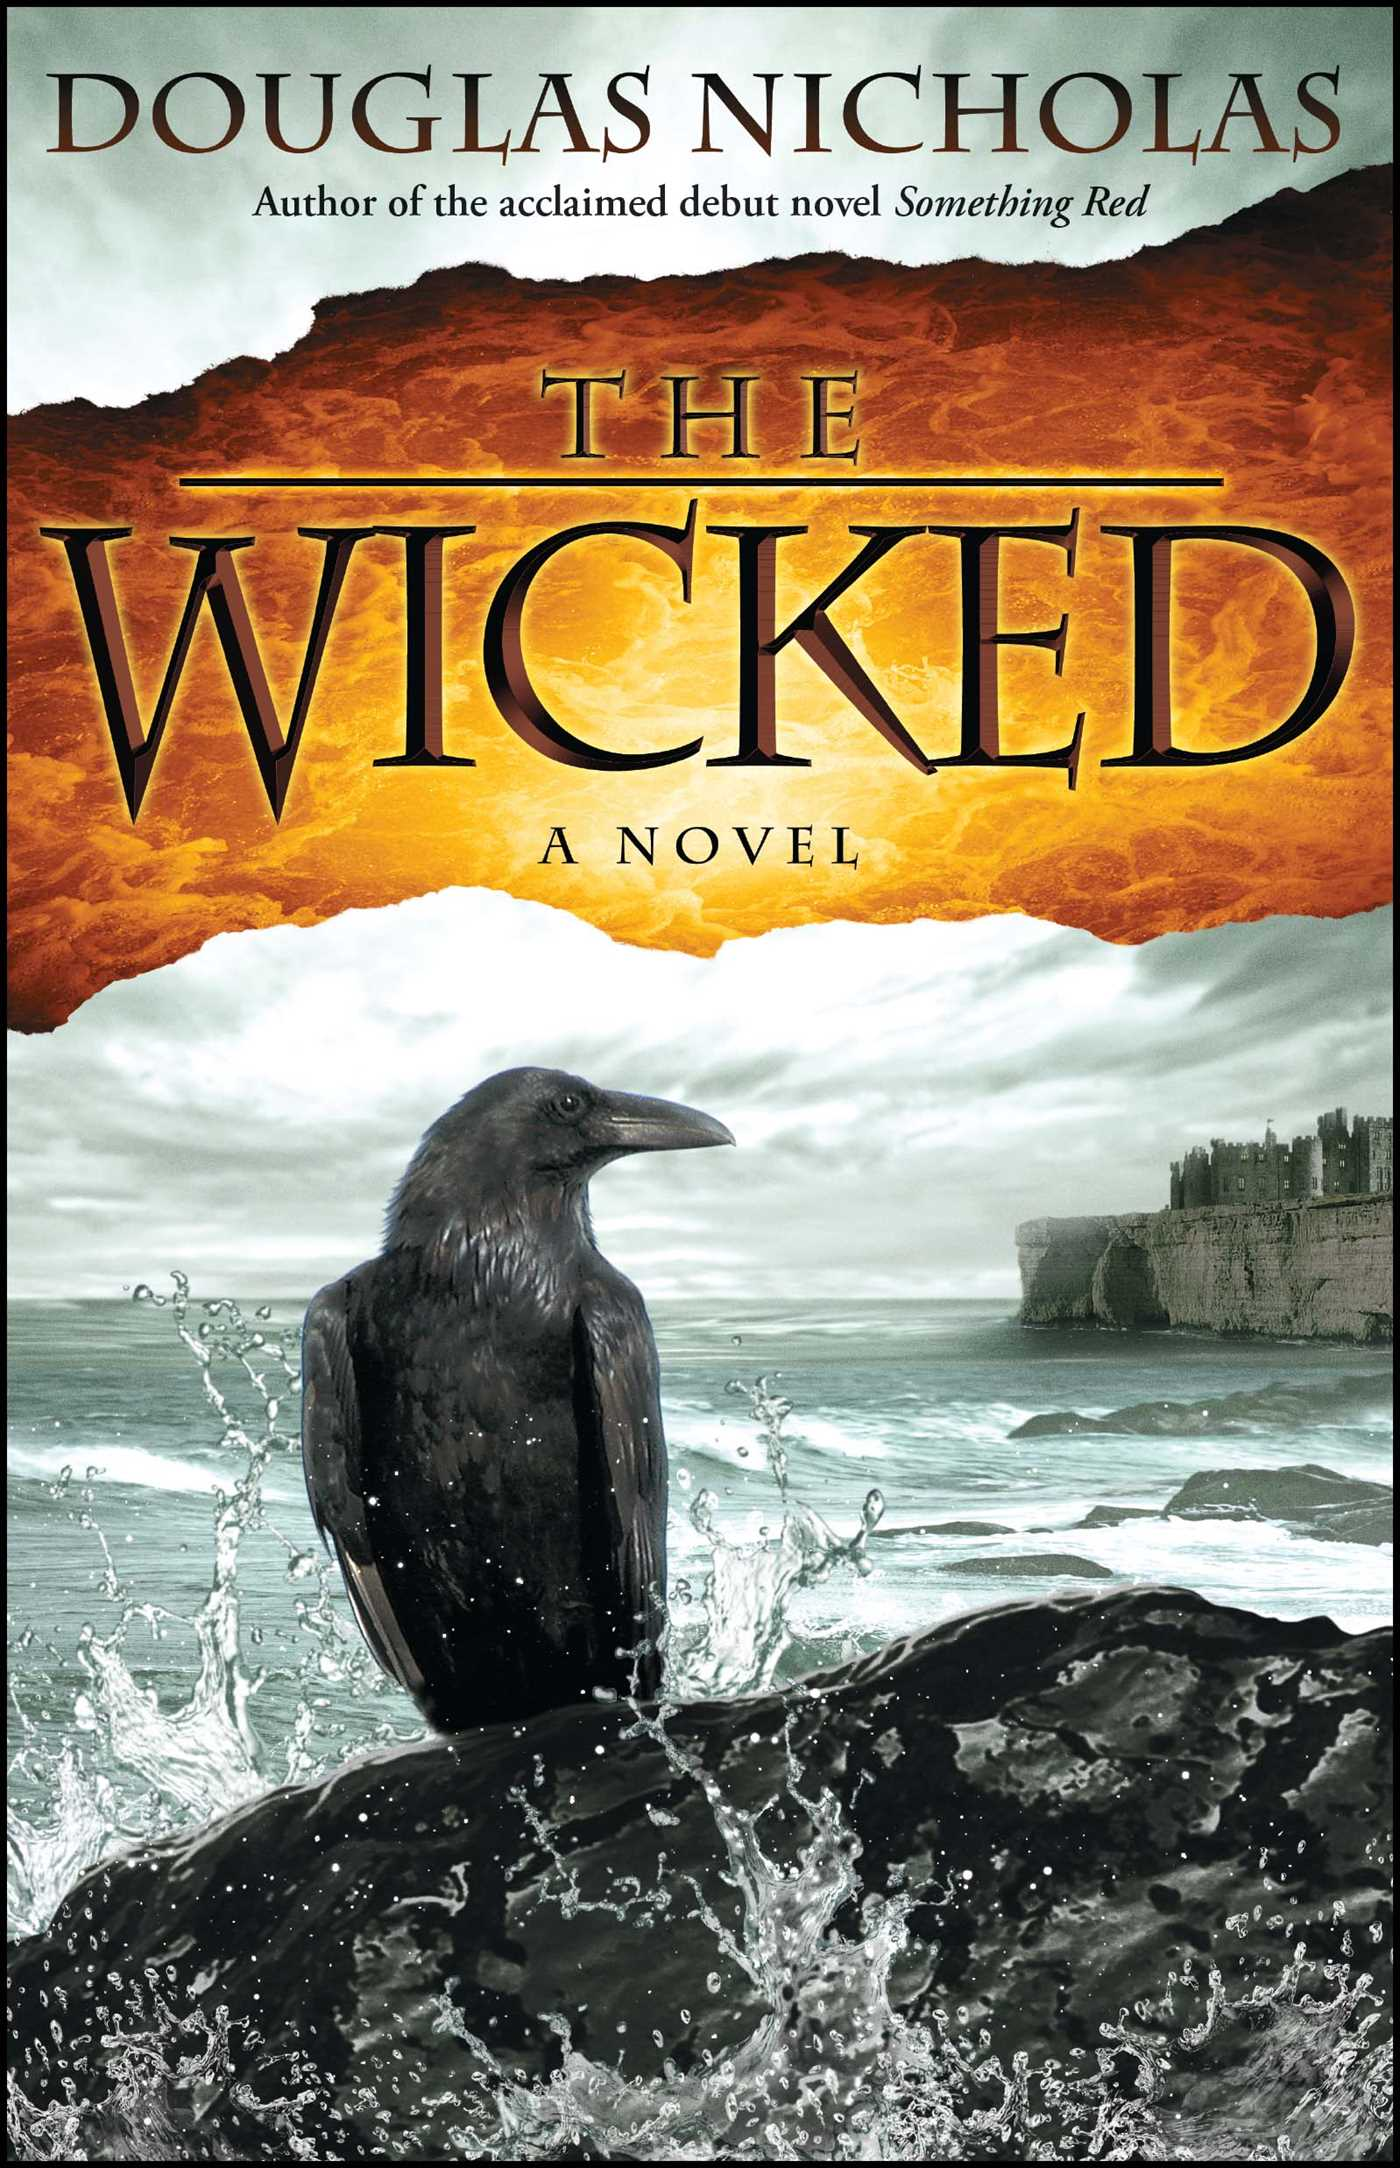 The wicked 9781451660265 hr